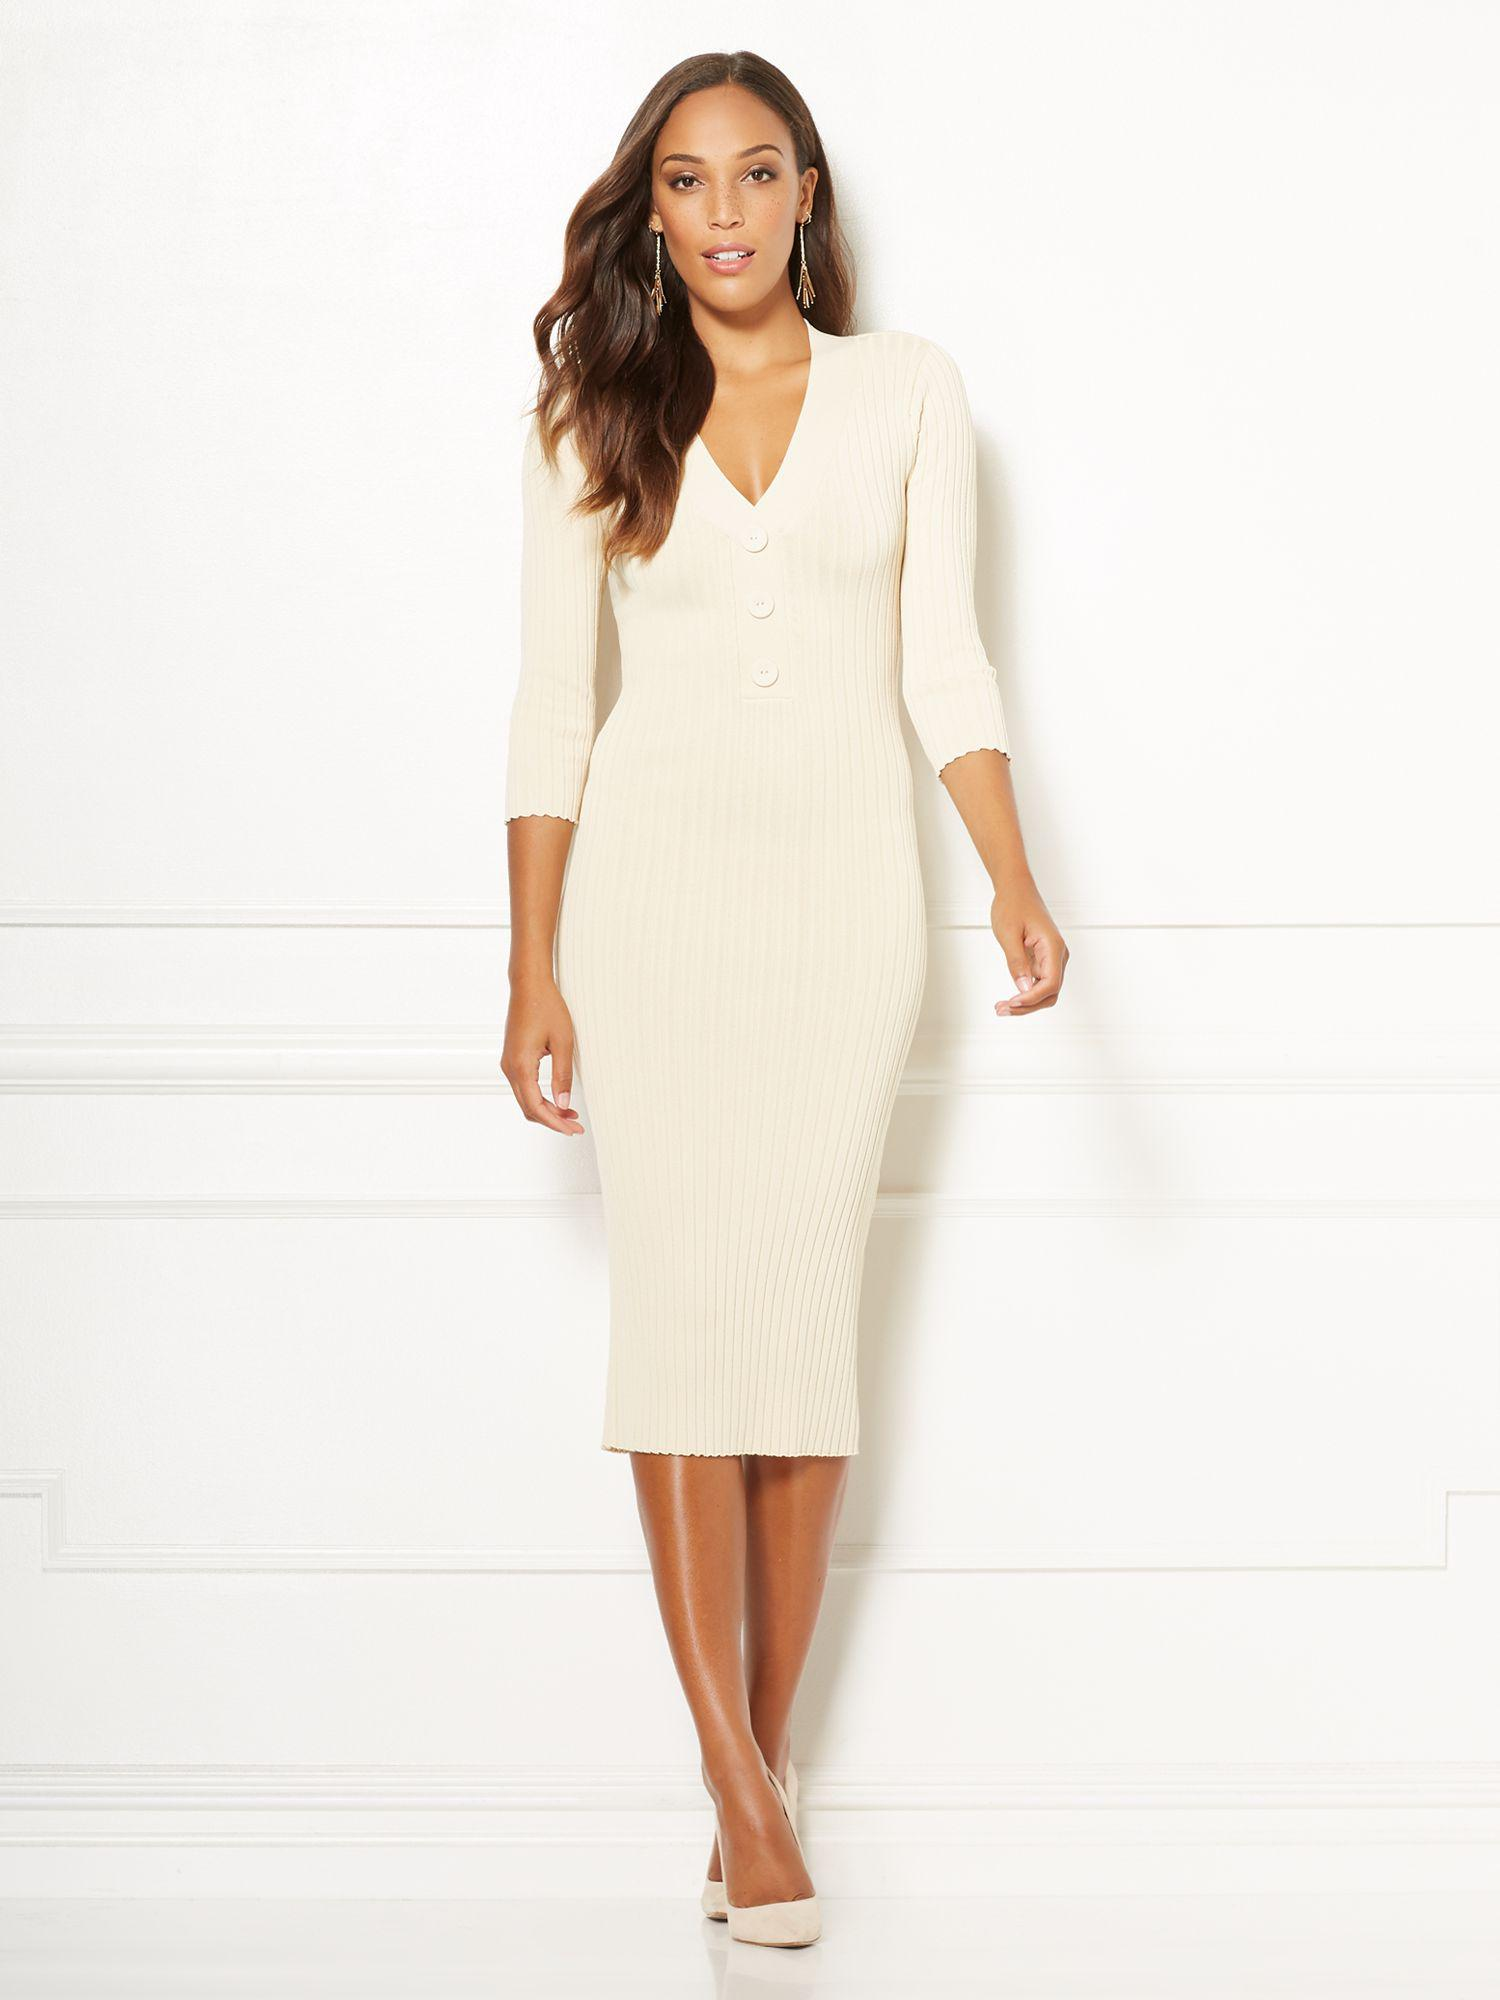 61567166c61 New York   Company. Women s White Eva Mendes Collection - Cherelle Sweater  Dress